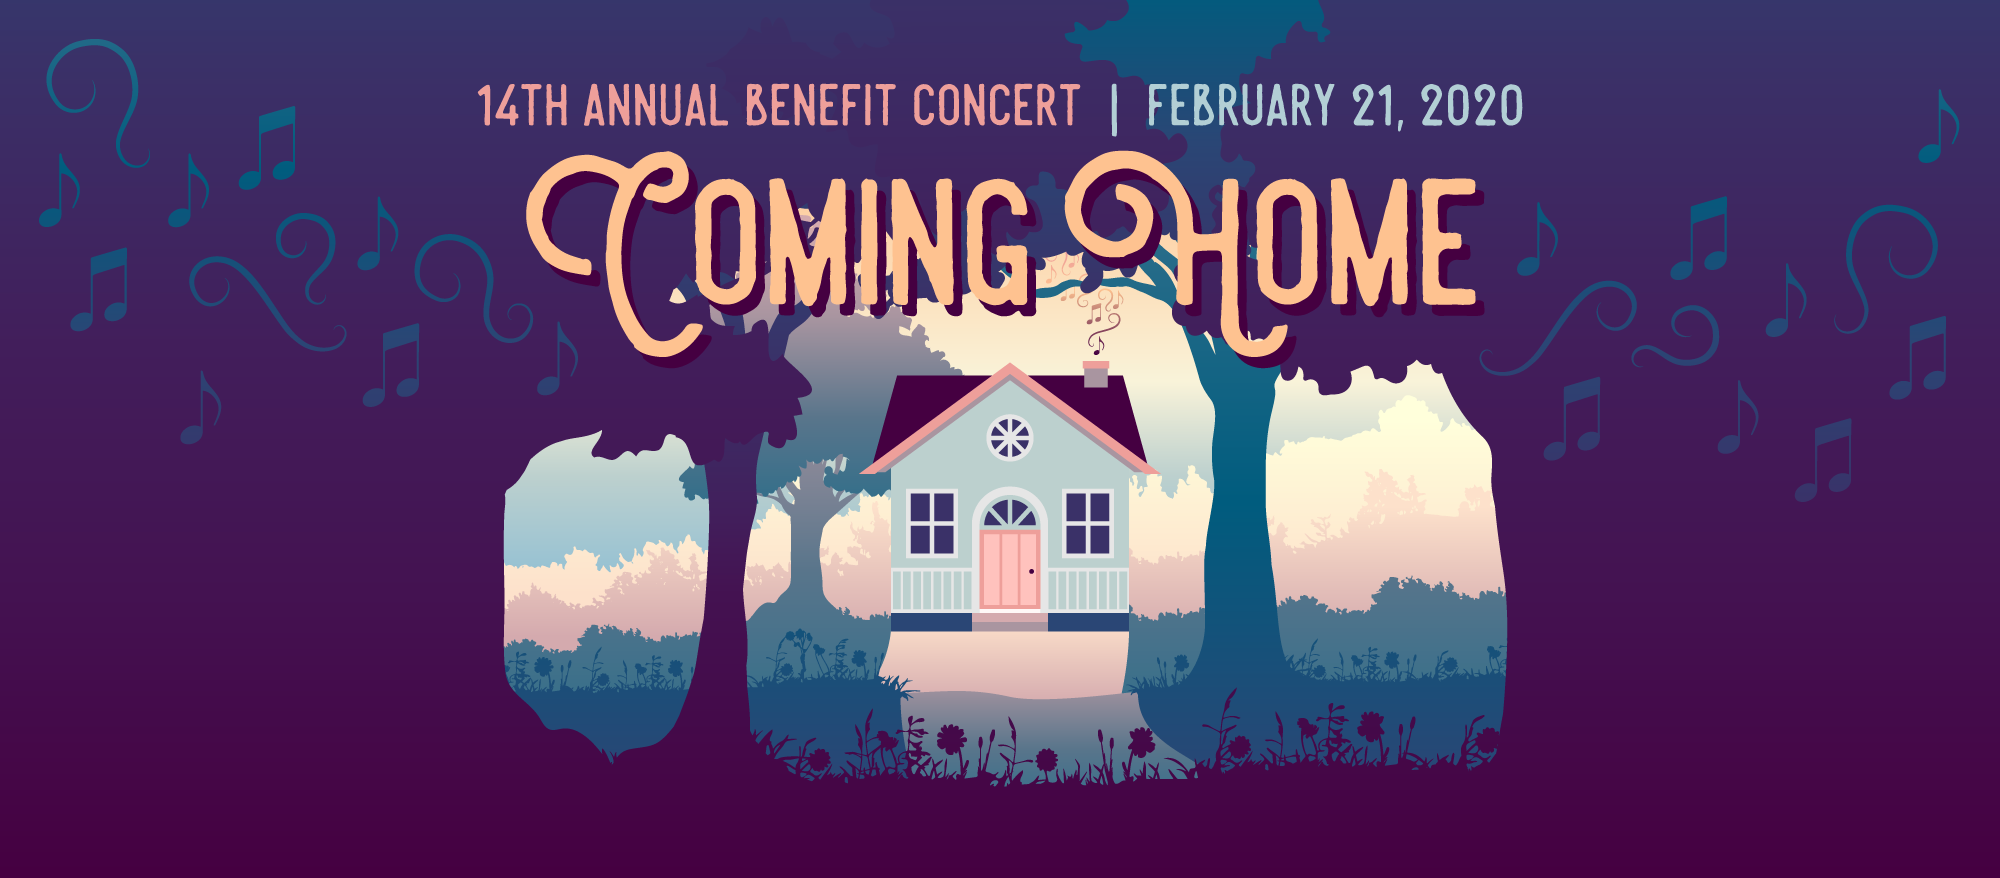 Coming Home, our 14th Annual Benefit Concert